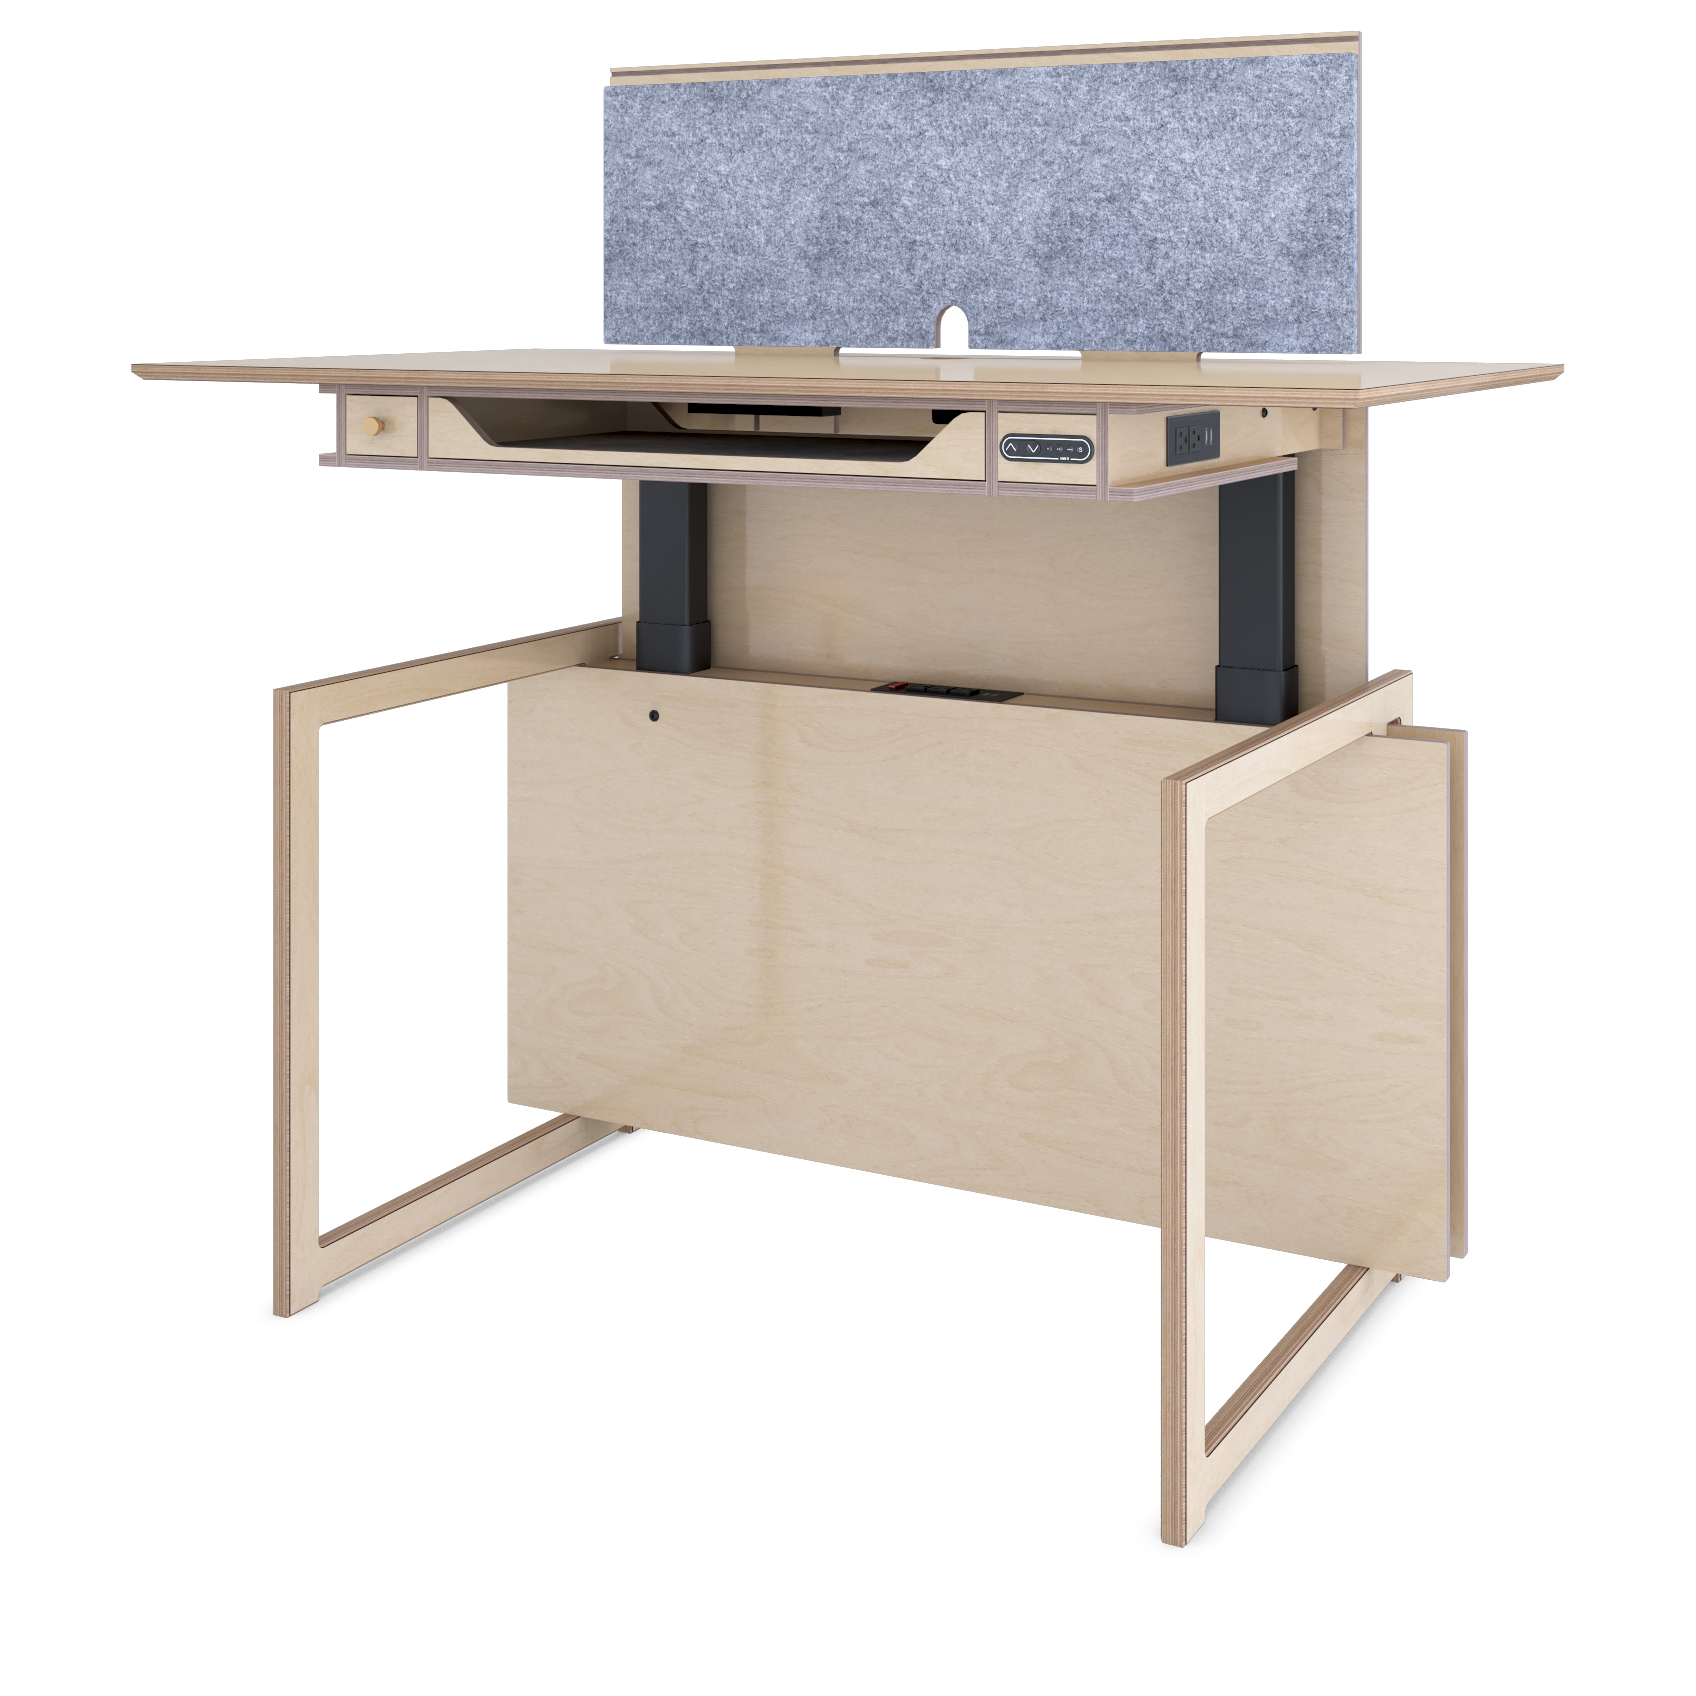 The Baltic Sit-Stand Desk